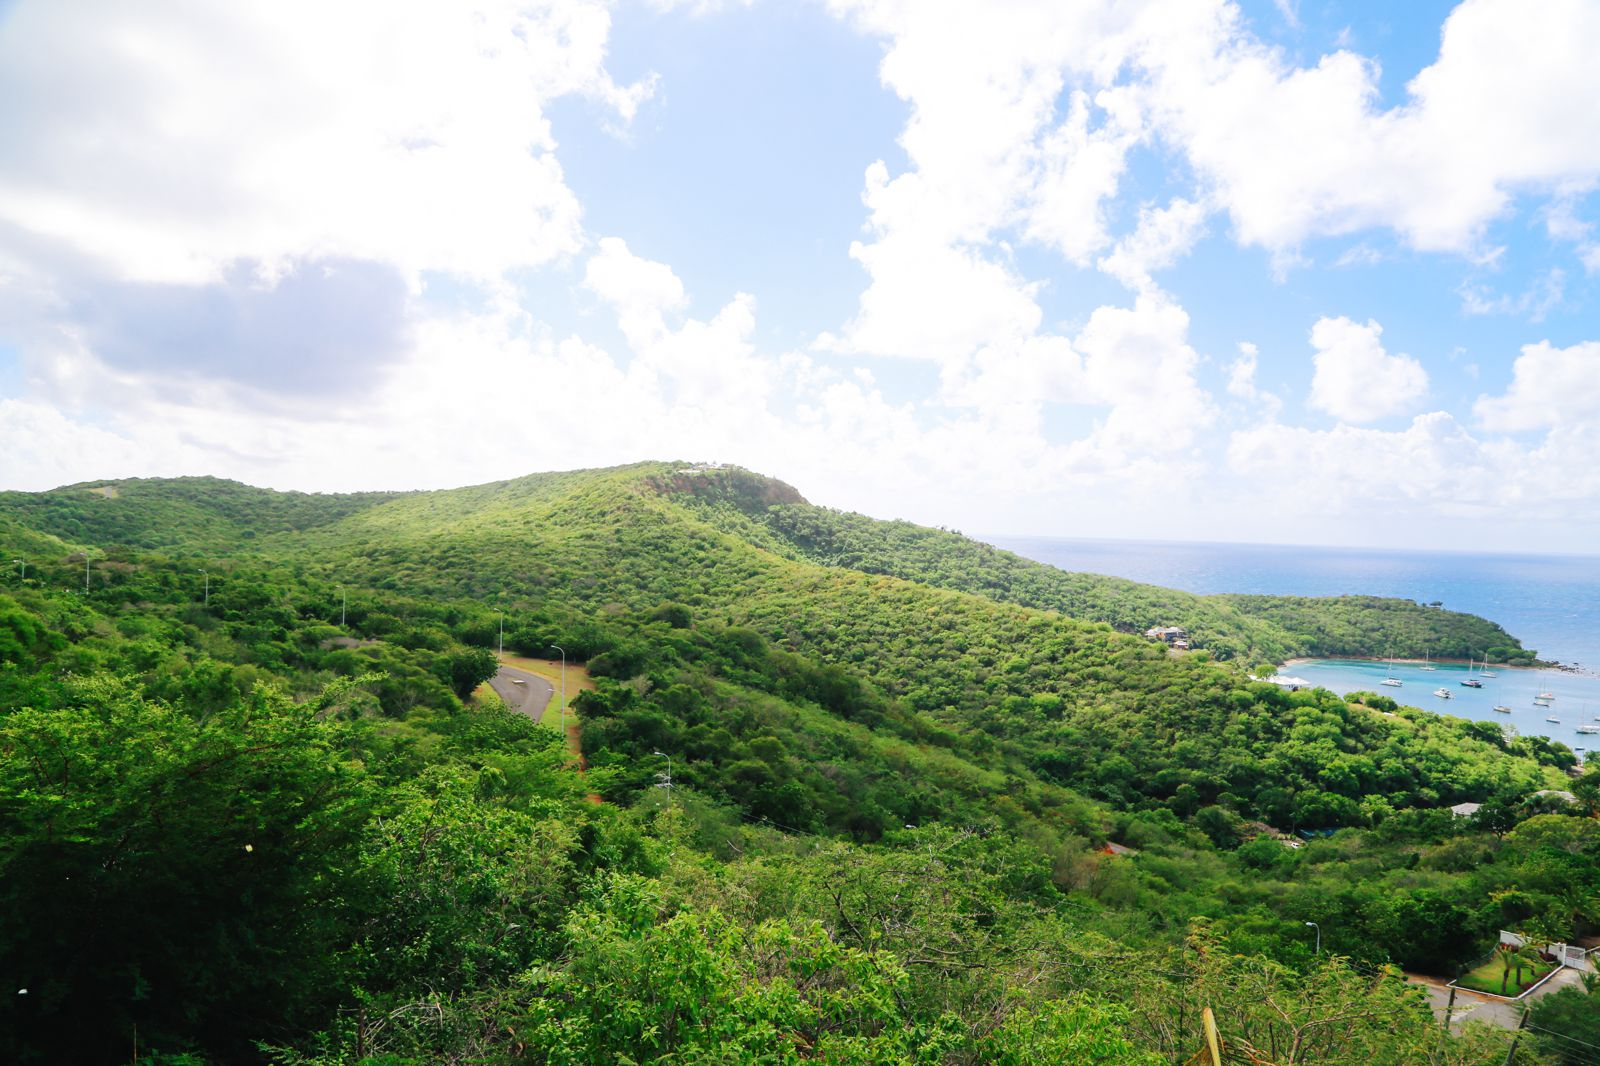 Exploring The Caribbean Island Of Antigua By Land - Part 1 (34)